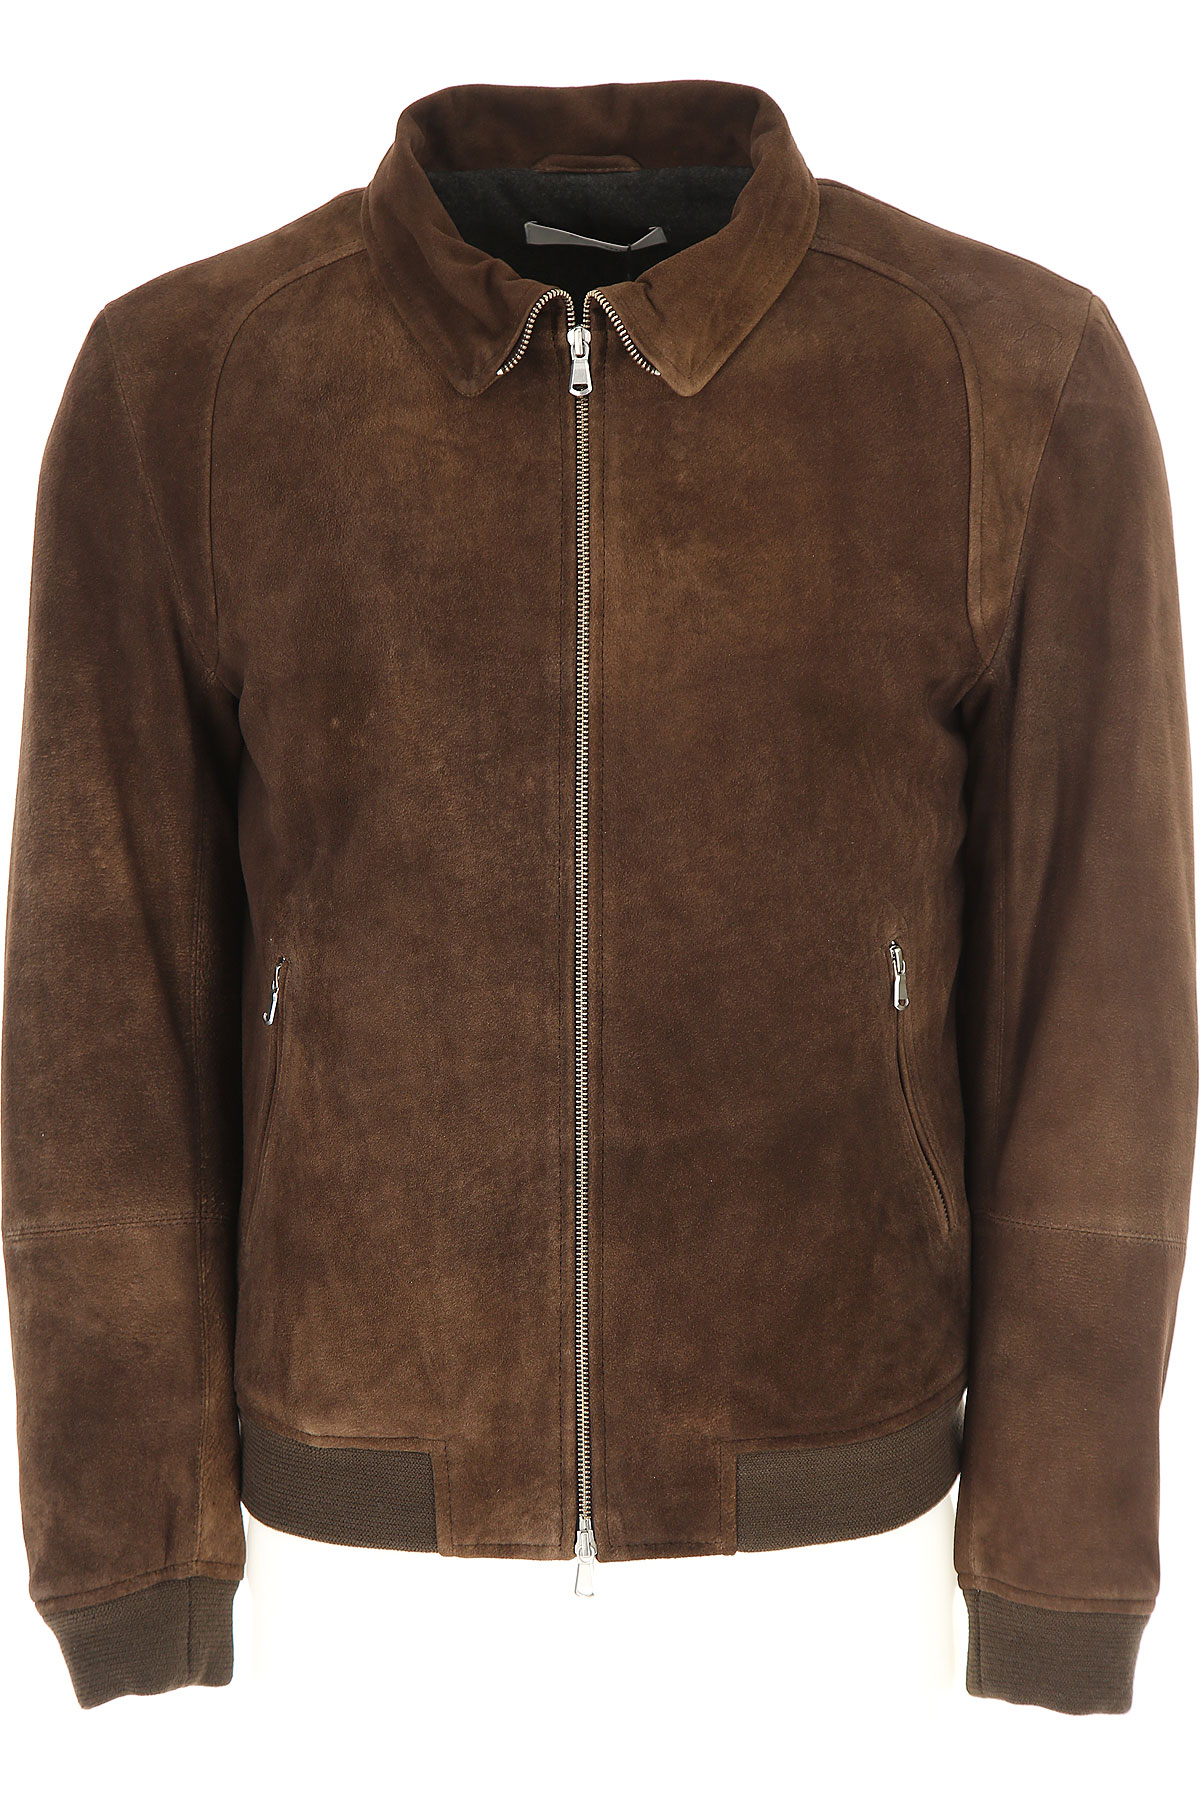 Image of Mauro Grifoni Leather Jacket for Men, Brown, Leather, 2017, L M